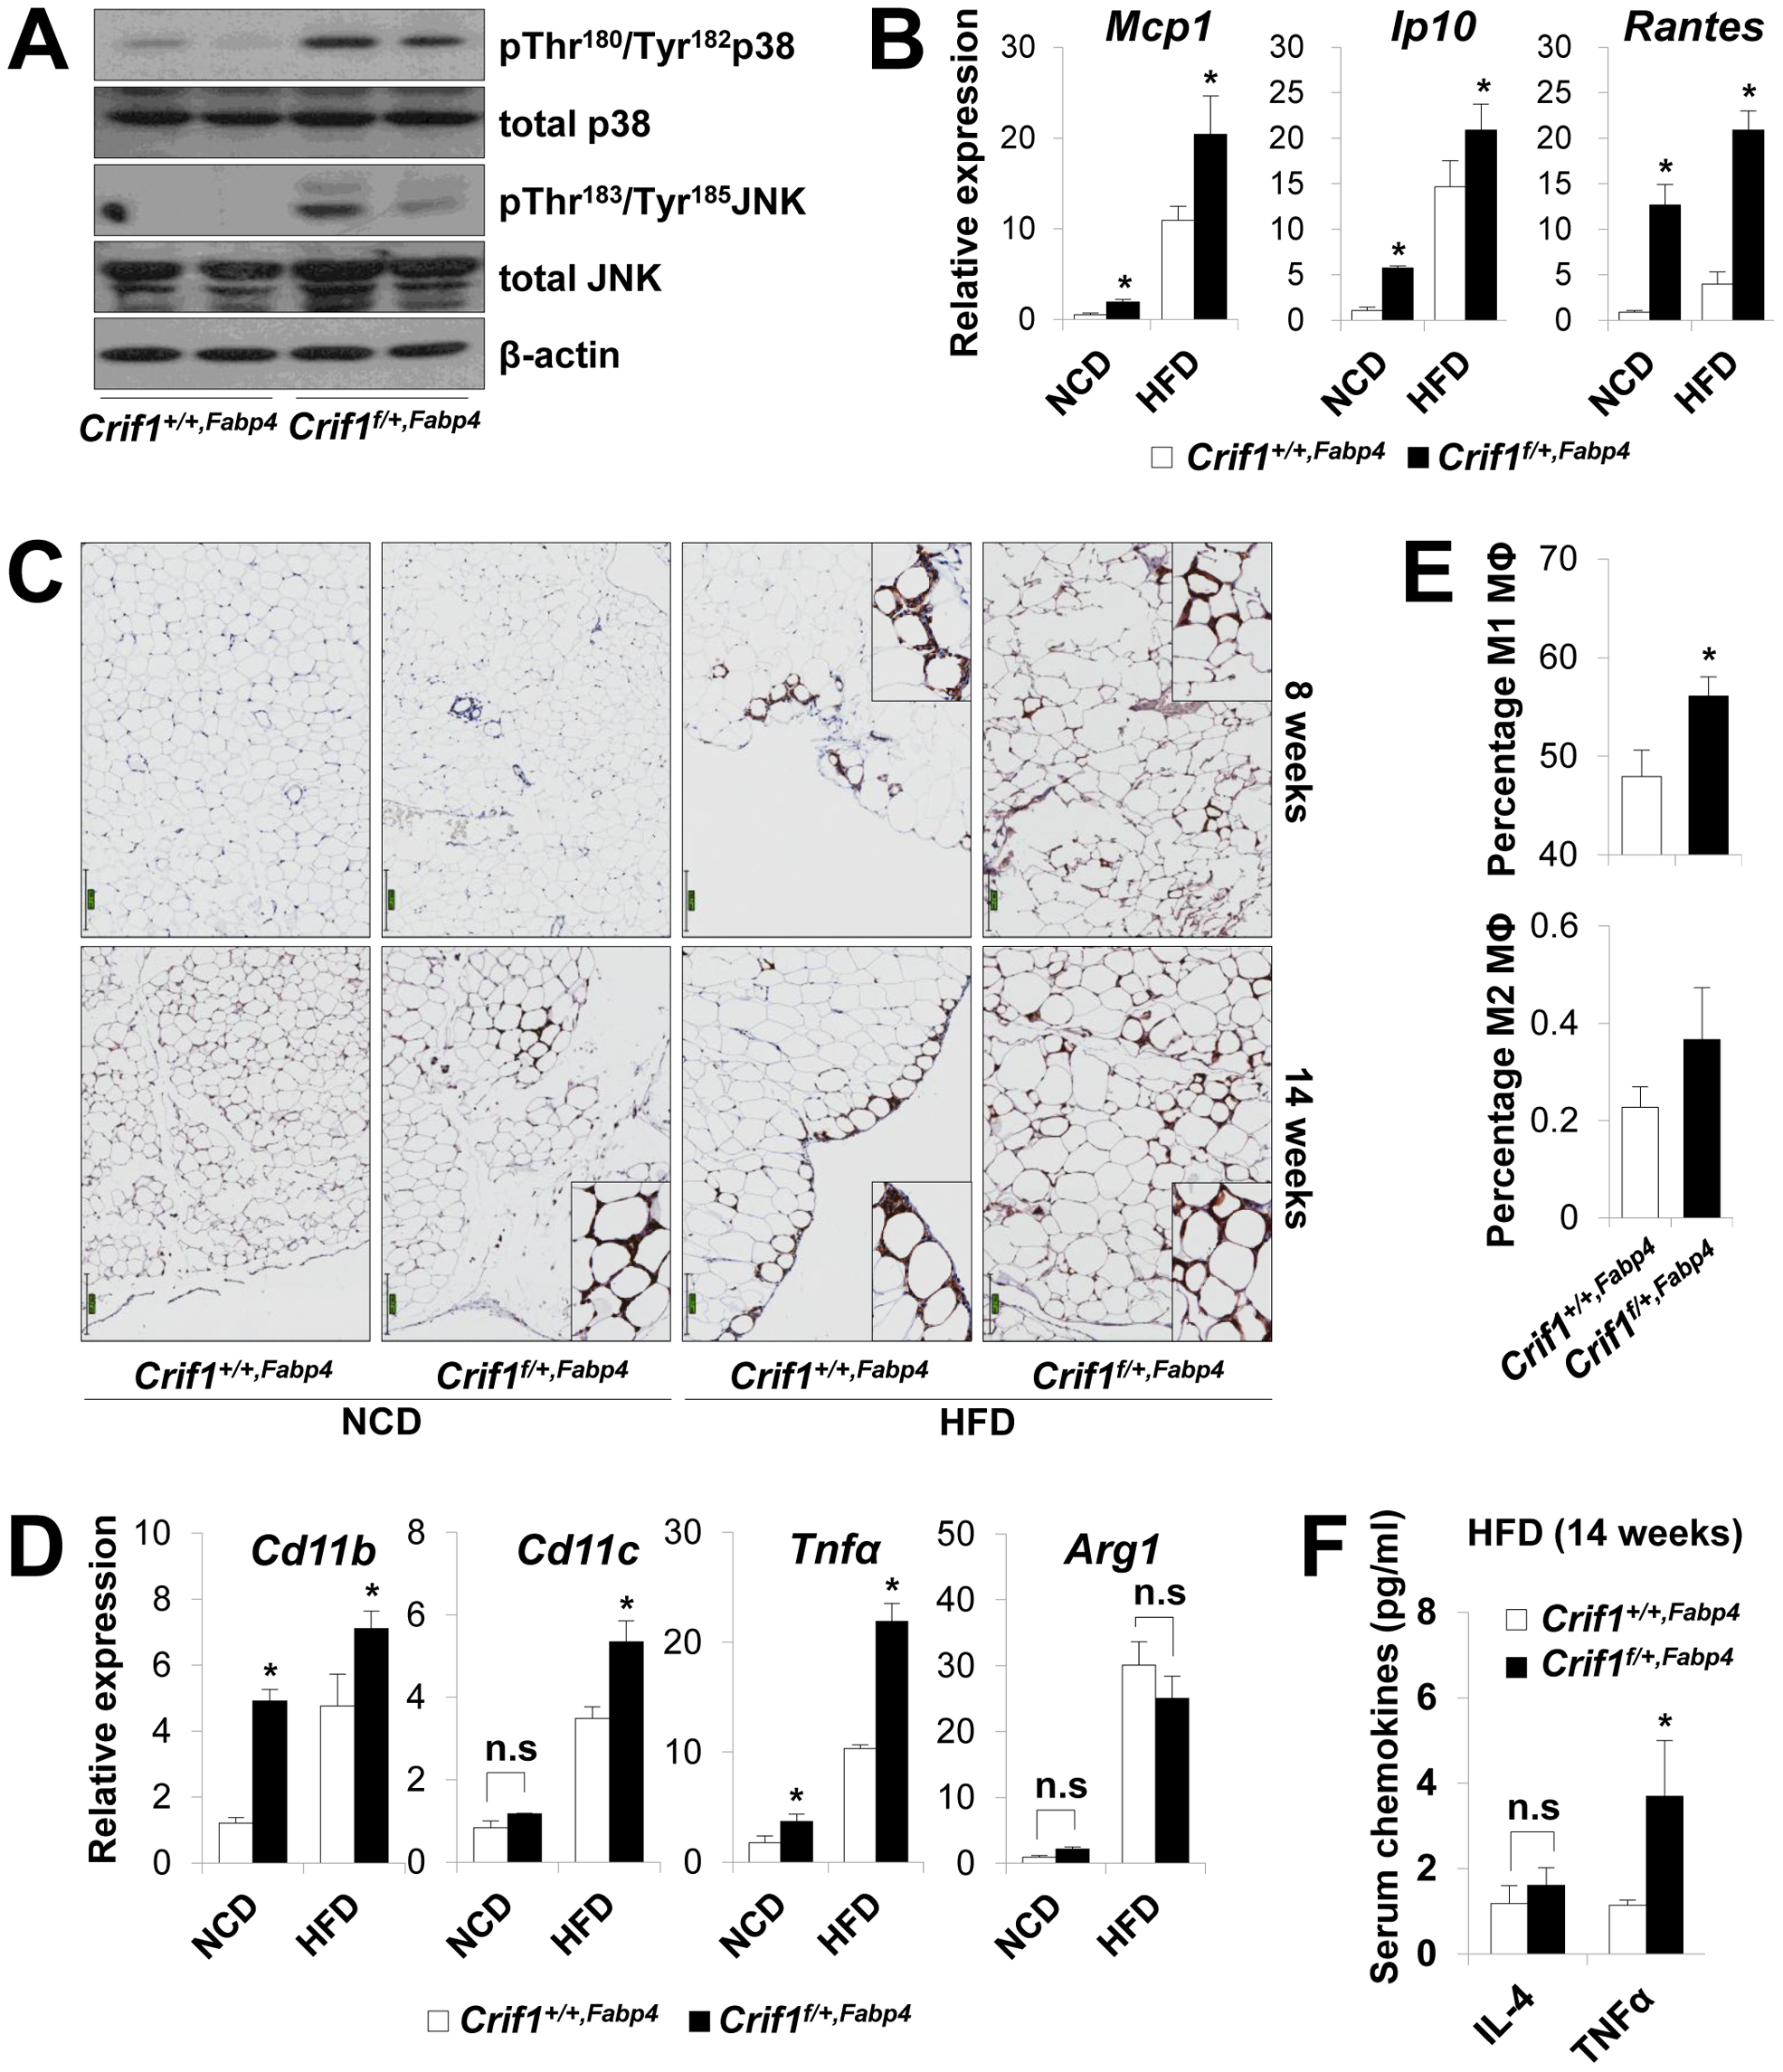 Macrophage infiltration and inflammation in adipose tissue of <i>Crif1<sup>f/+,Fabp4</sup></i> mice.